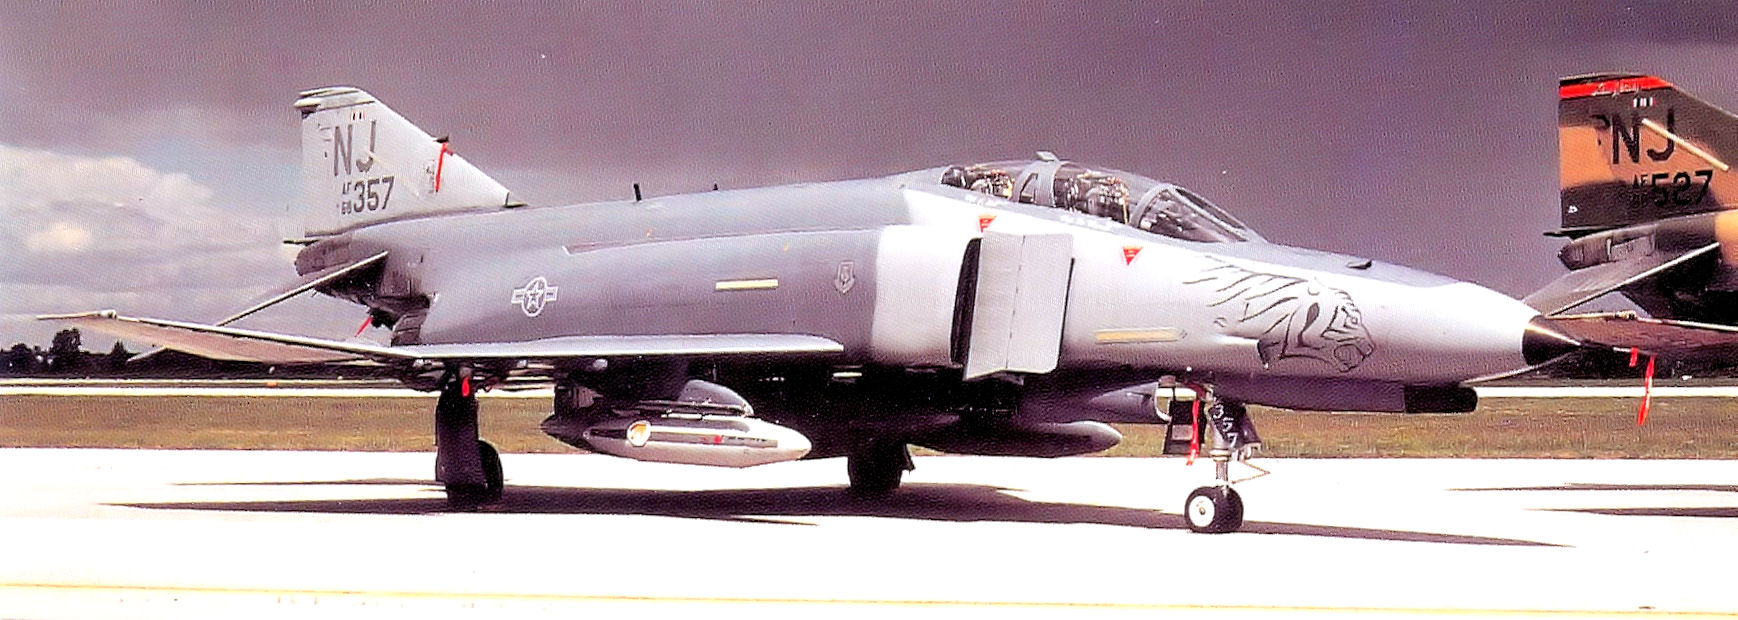 141st Fighter Squadron